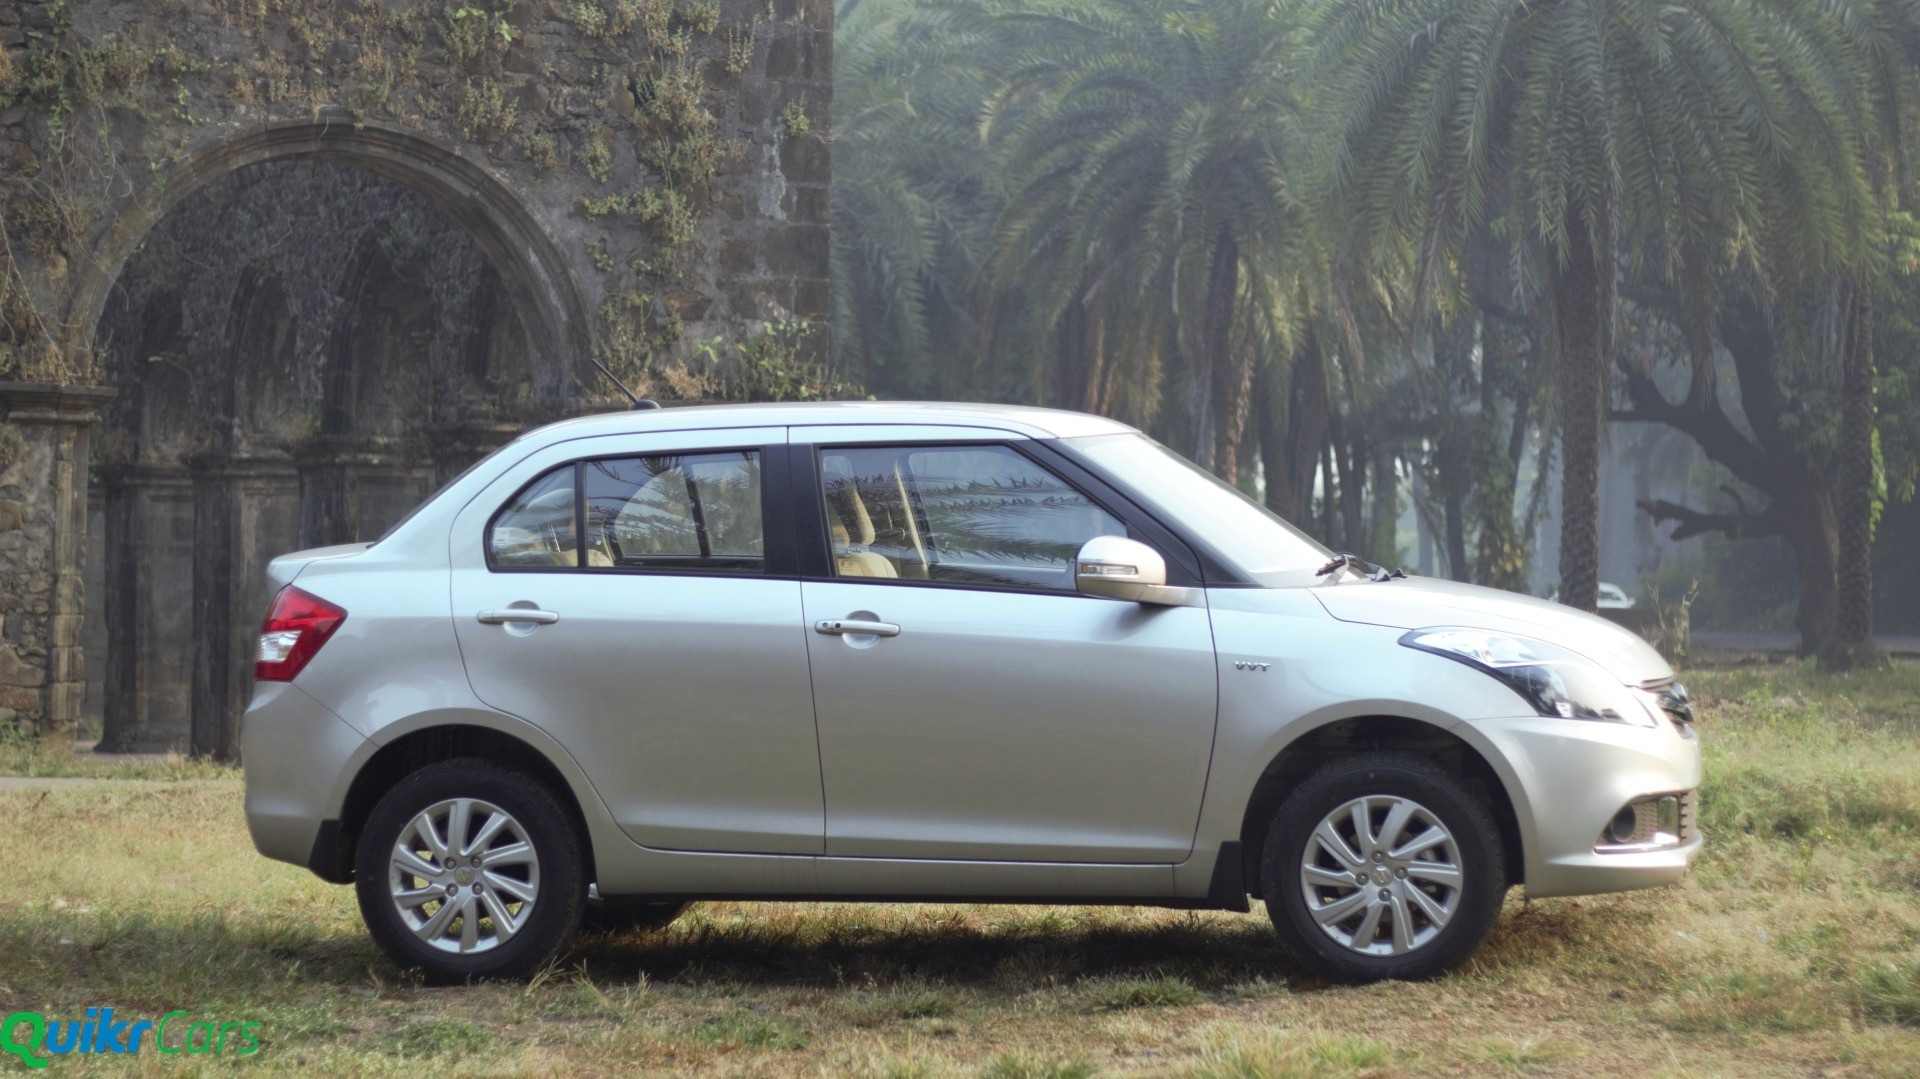 Maruti DZire - Side Shot - Stationary